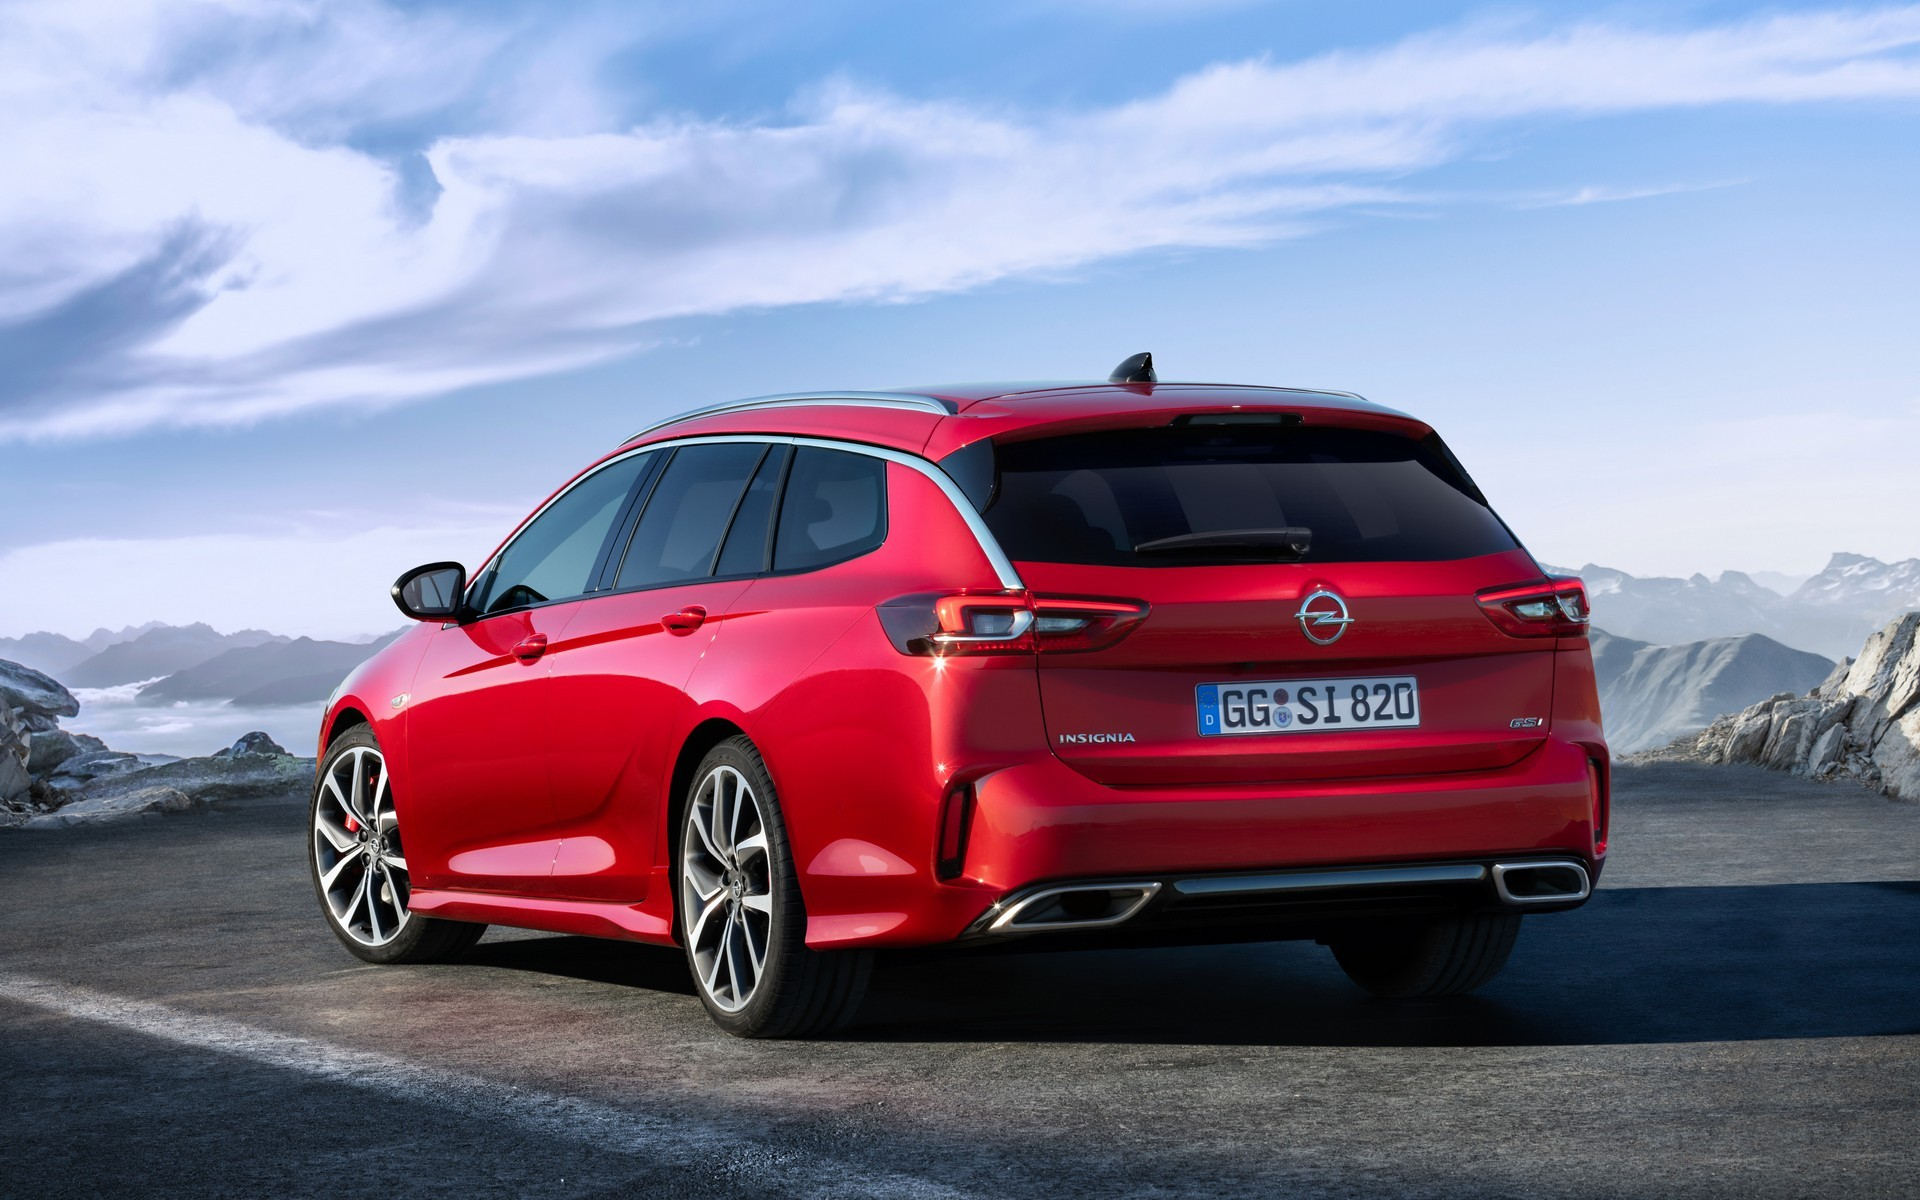 New 2020 Opel Insignia GSi Has 230 HP, Looks Sexy but ...